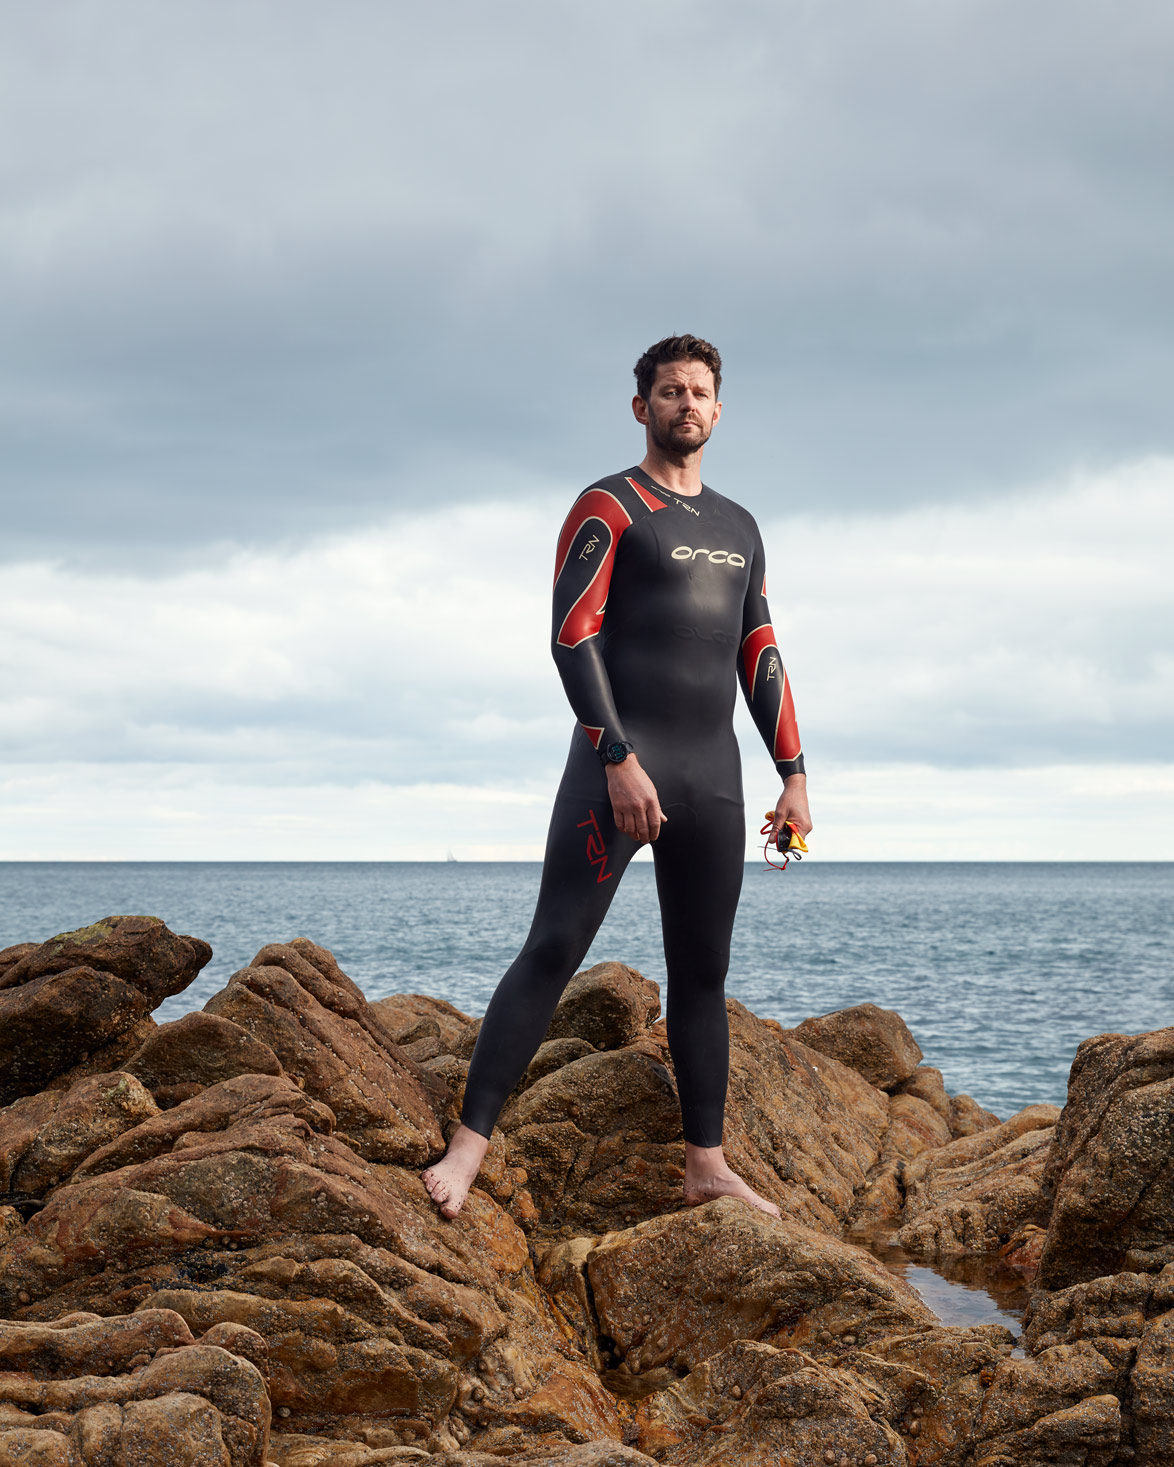 business photography: triathlete standing on rock